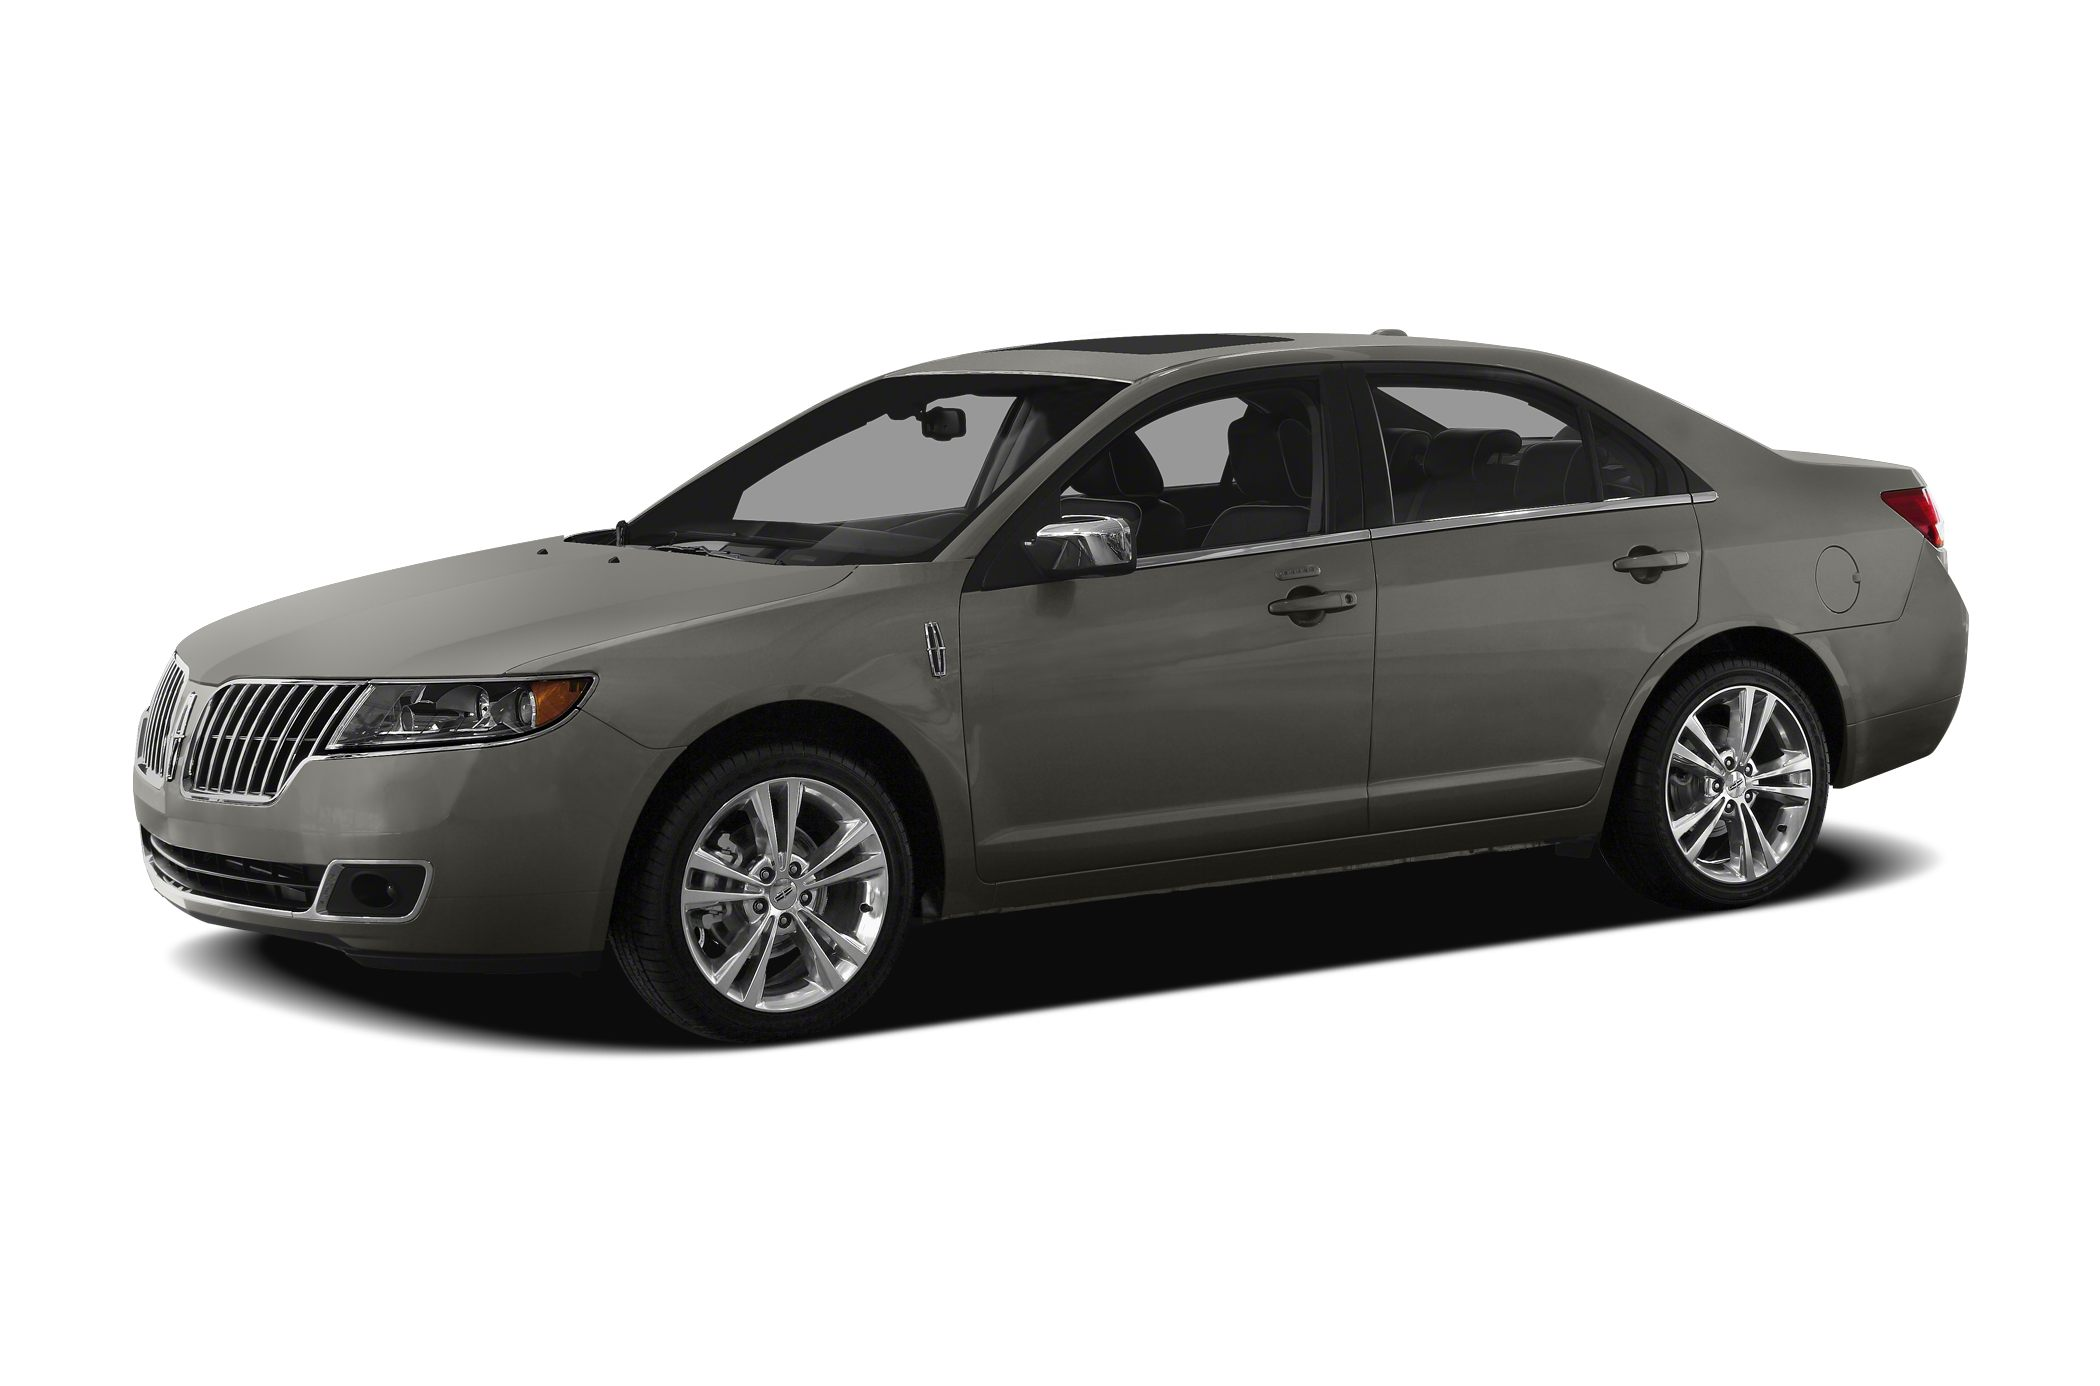 2012 Lincoln MKZ Base Value Value 3 Year 100k miles limited Power Train Warranty with road side A